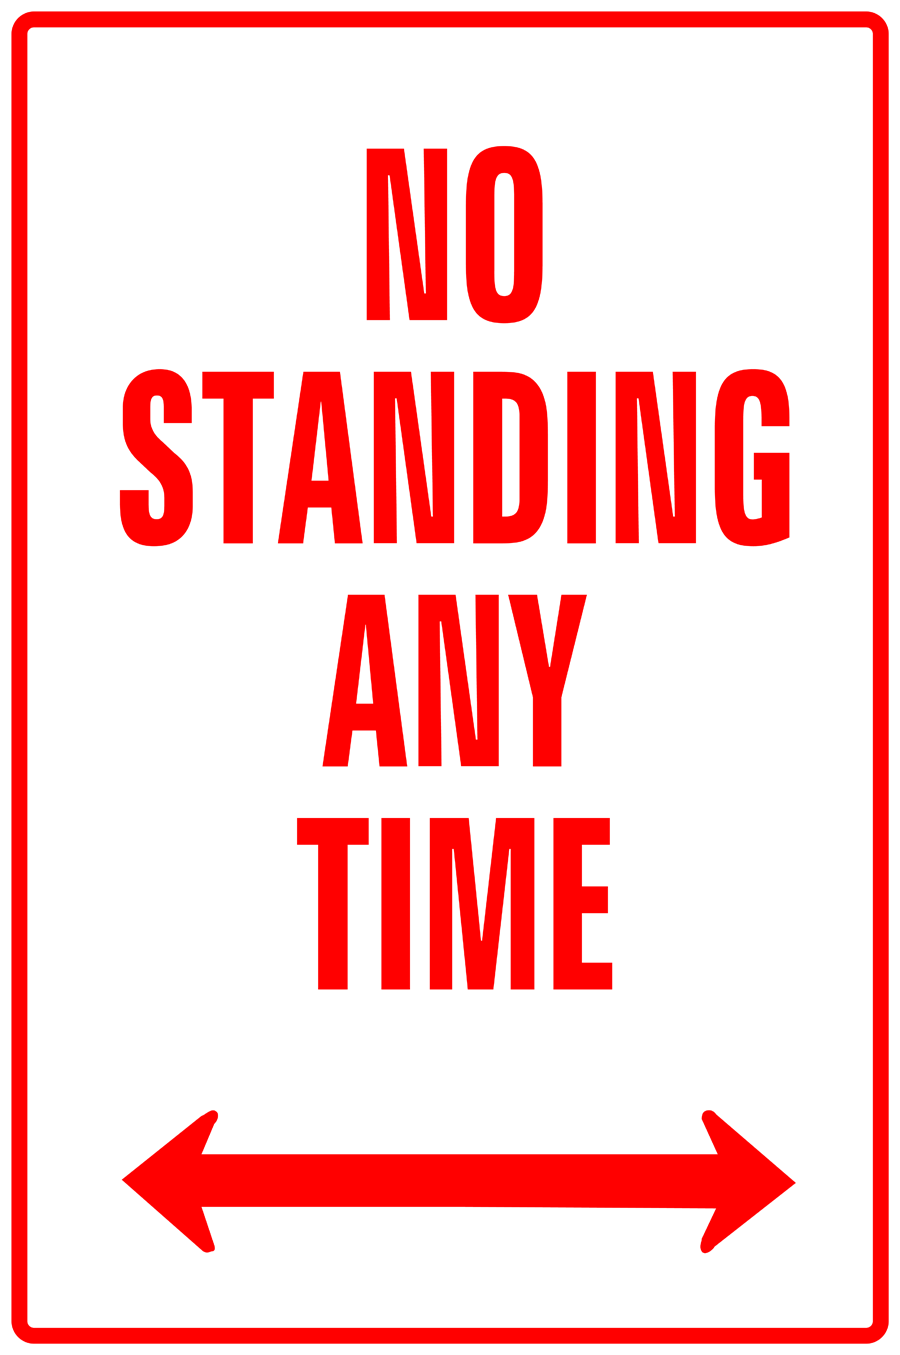 Traffic Signs - No Standing Any Time Left & Right